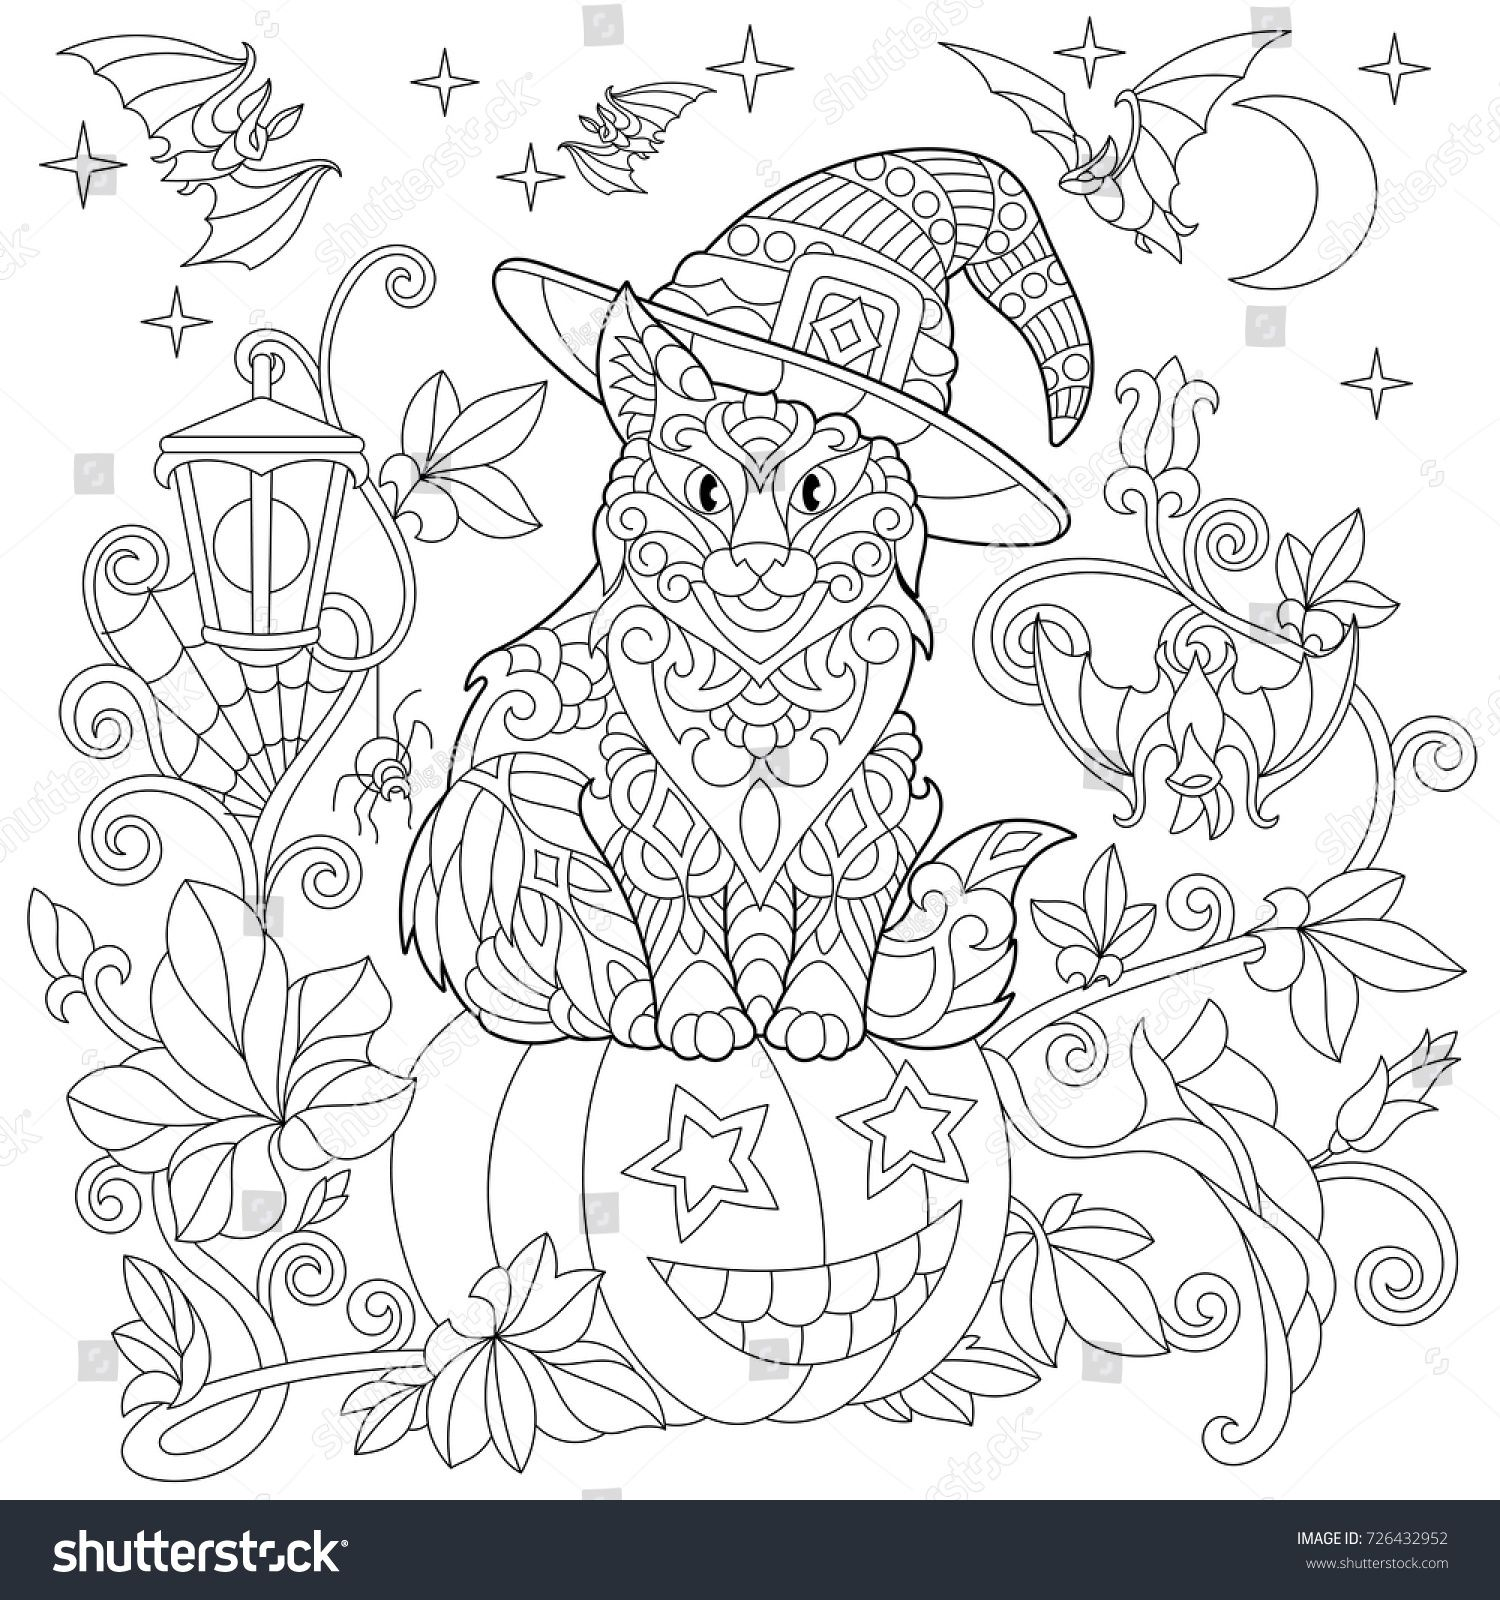 Halloween coloring page. Cat in a hat, halloween pumpkin, flying ...